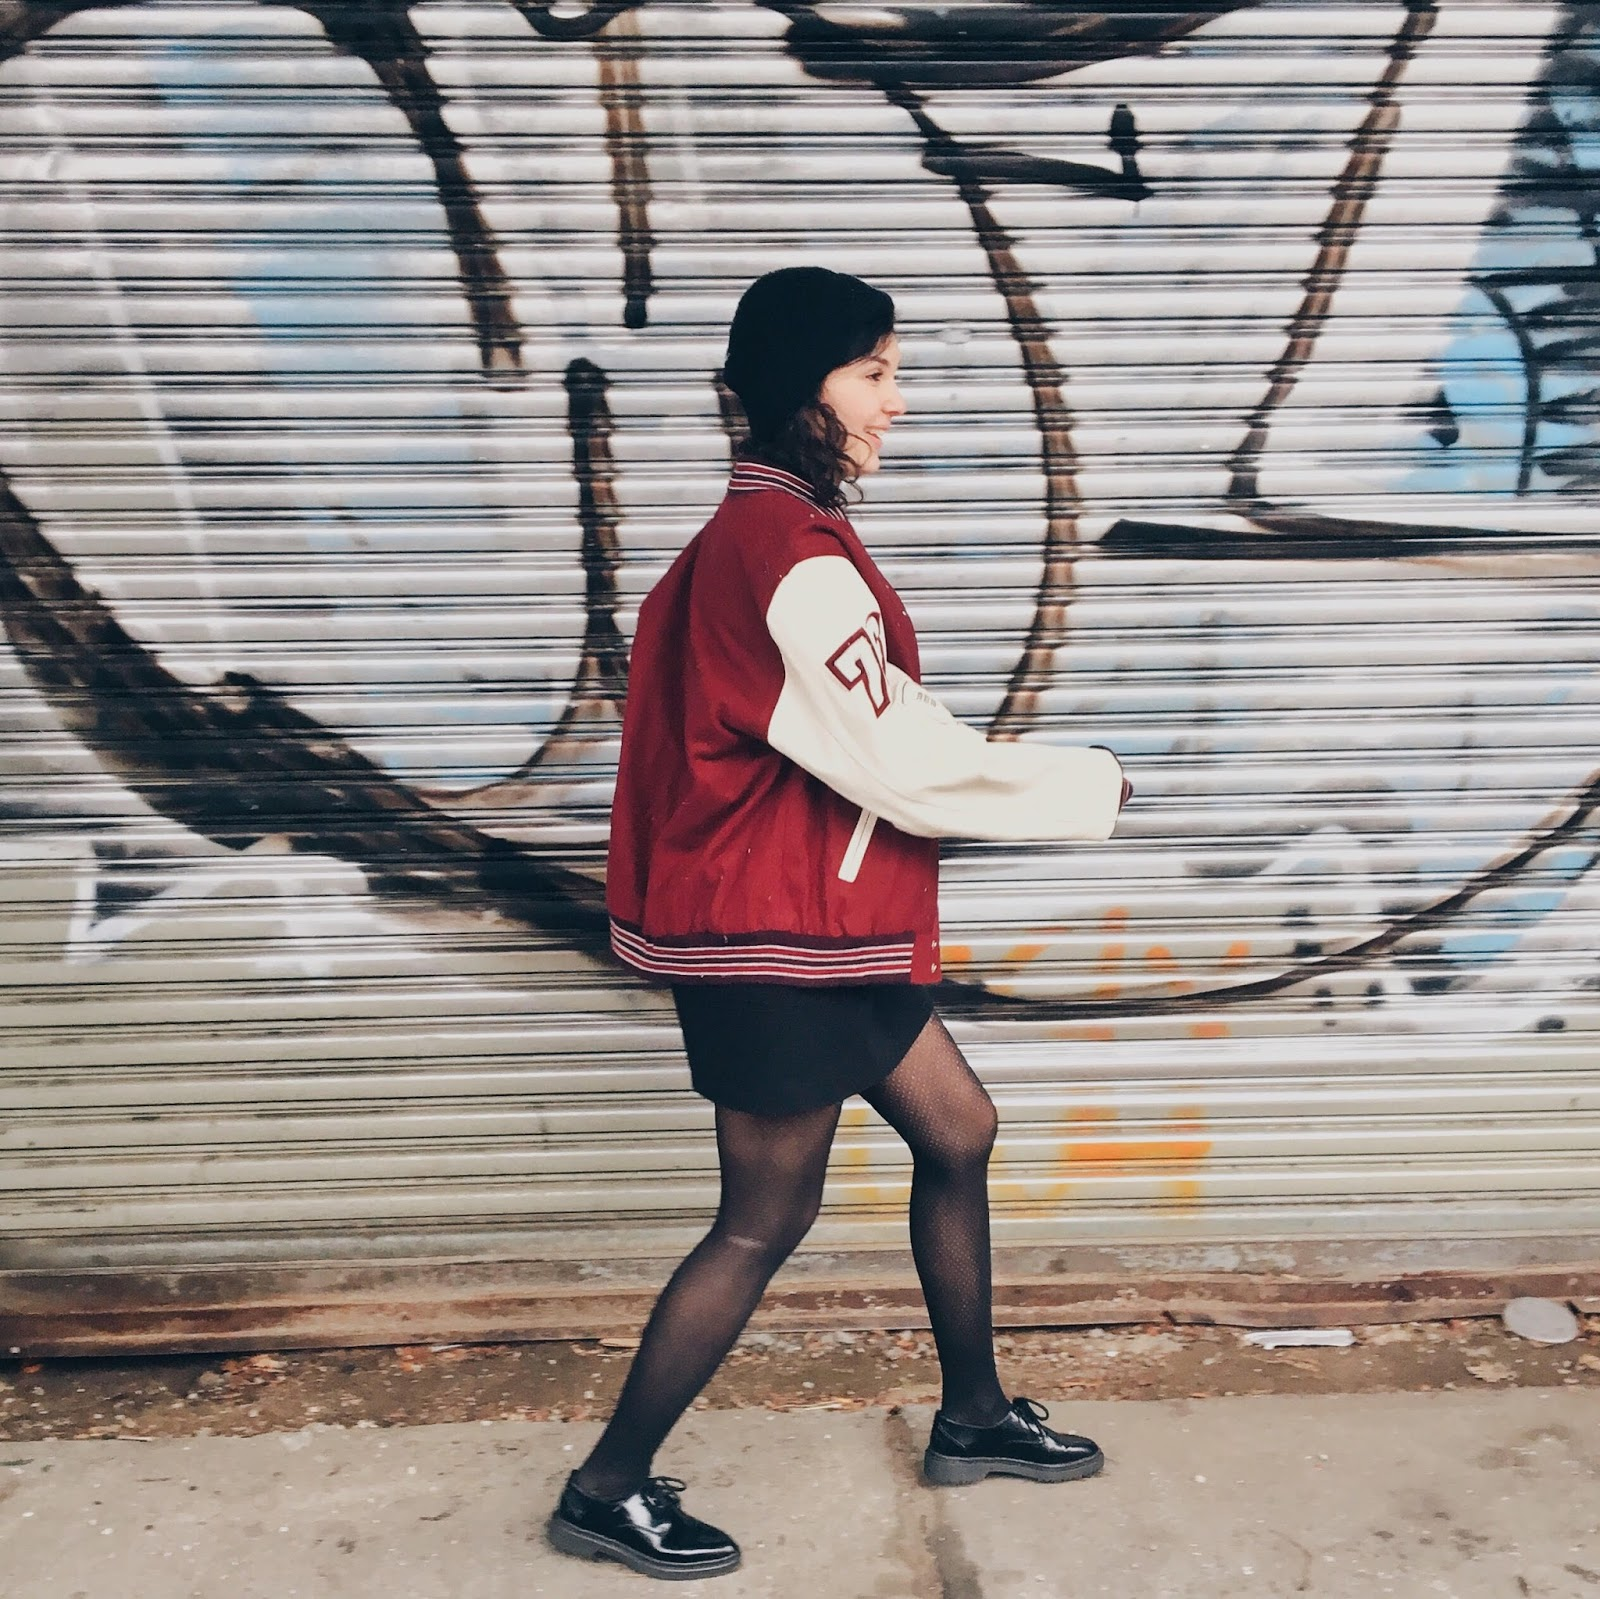 brooklyn is burning, snowing, queens, astoria, new york city, vintage varsity jacket, american football, basketball, baseball, letterman, fashion blogger, personal style, outfit of the day, tomboy, androgynous style, boyish girl, brunette, fashionista, oxford shoes, black hat, black beanie